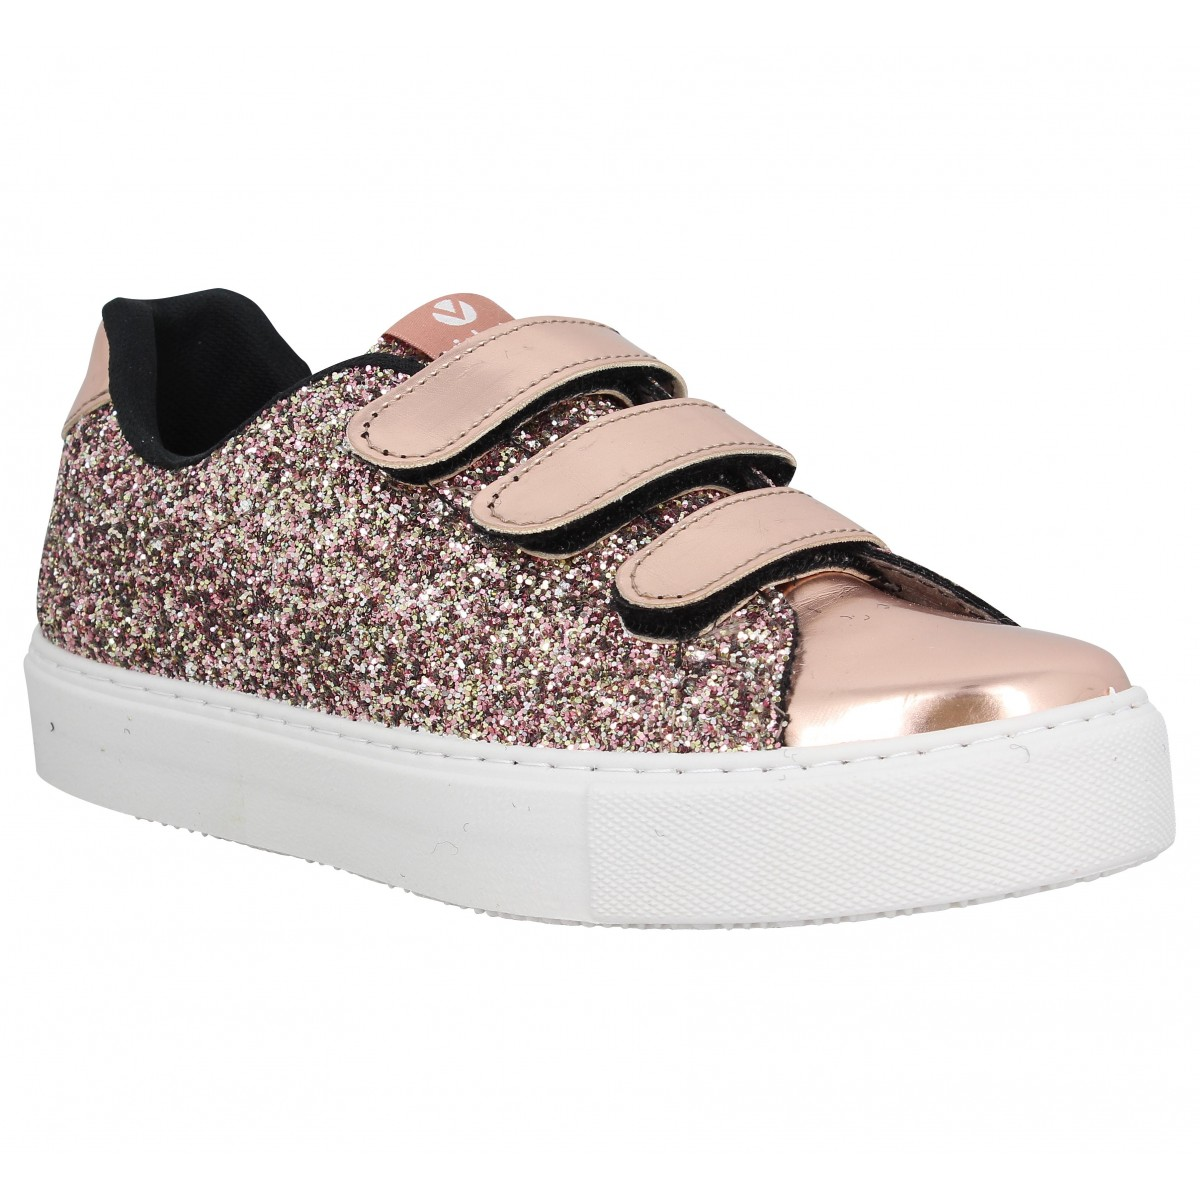 Victoria RosaFanny Chaussures Glitter 25014 Femme Velcro QdstxrCh